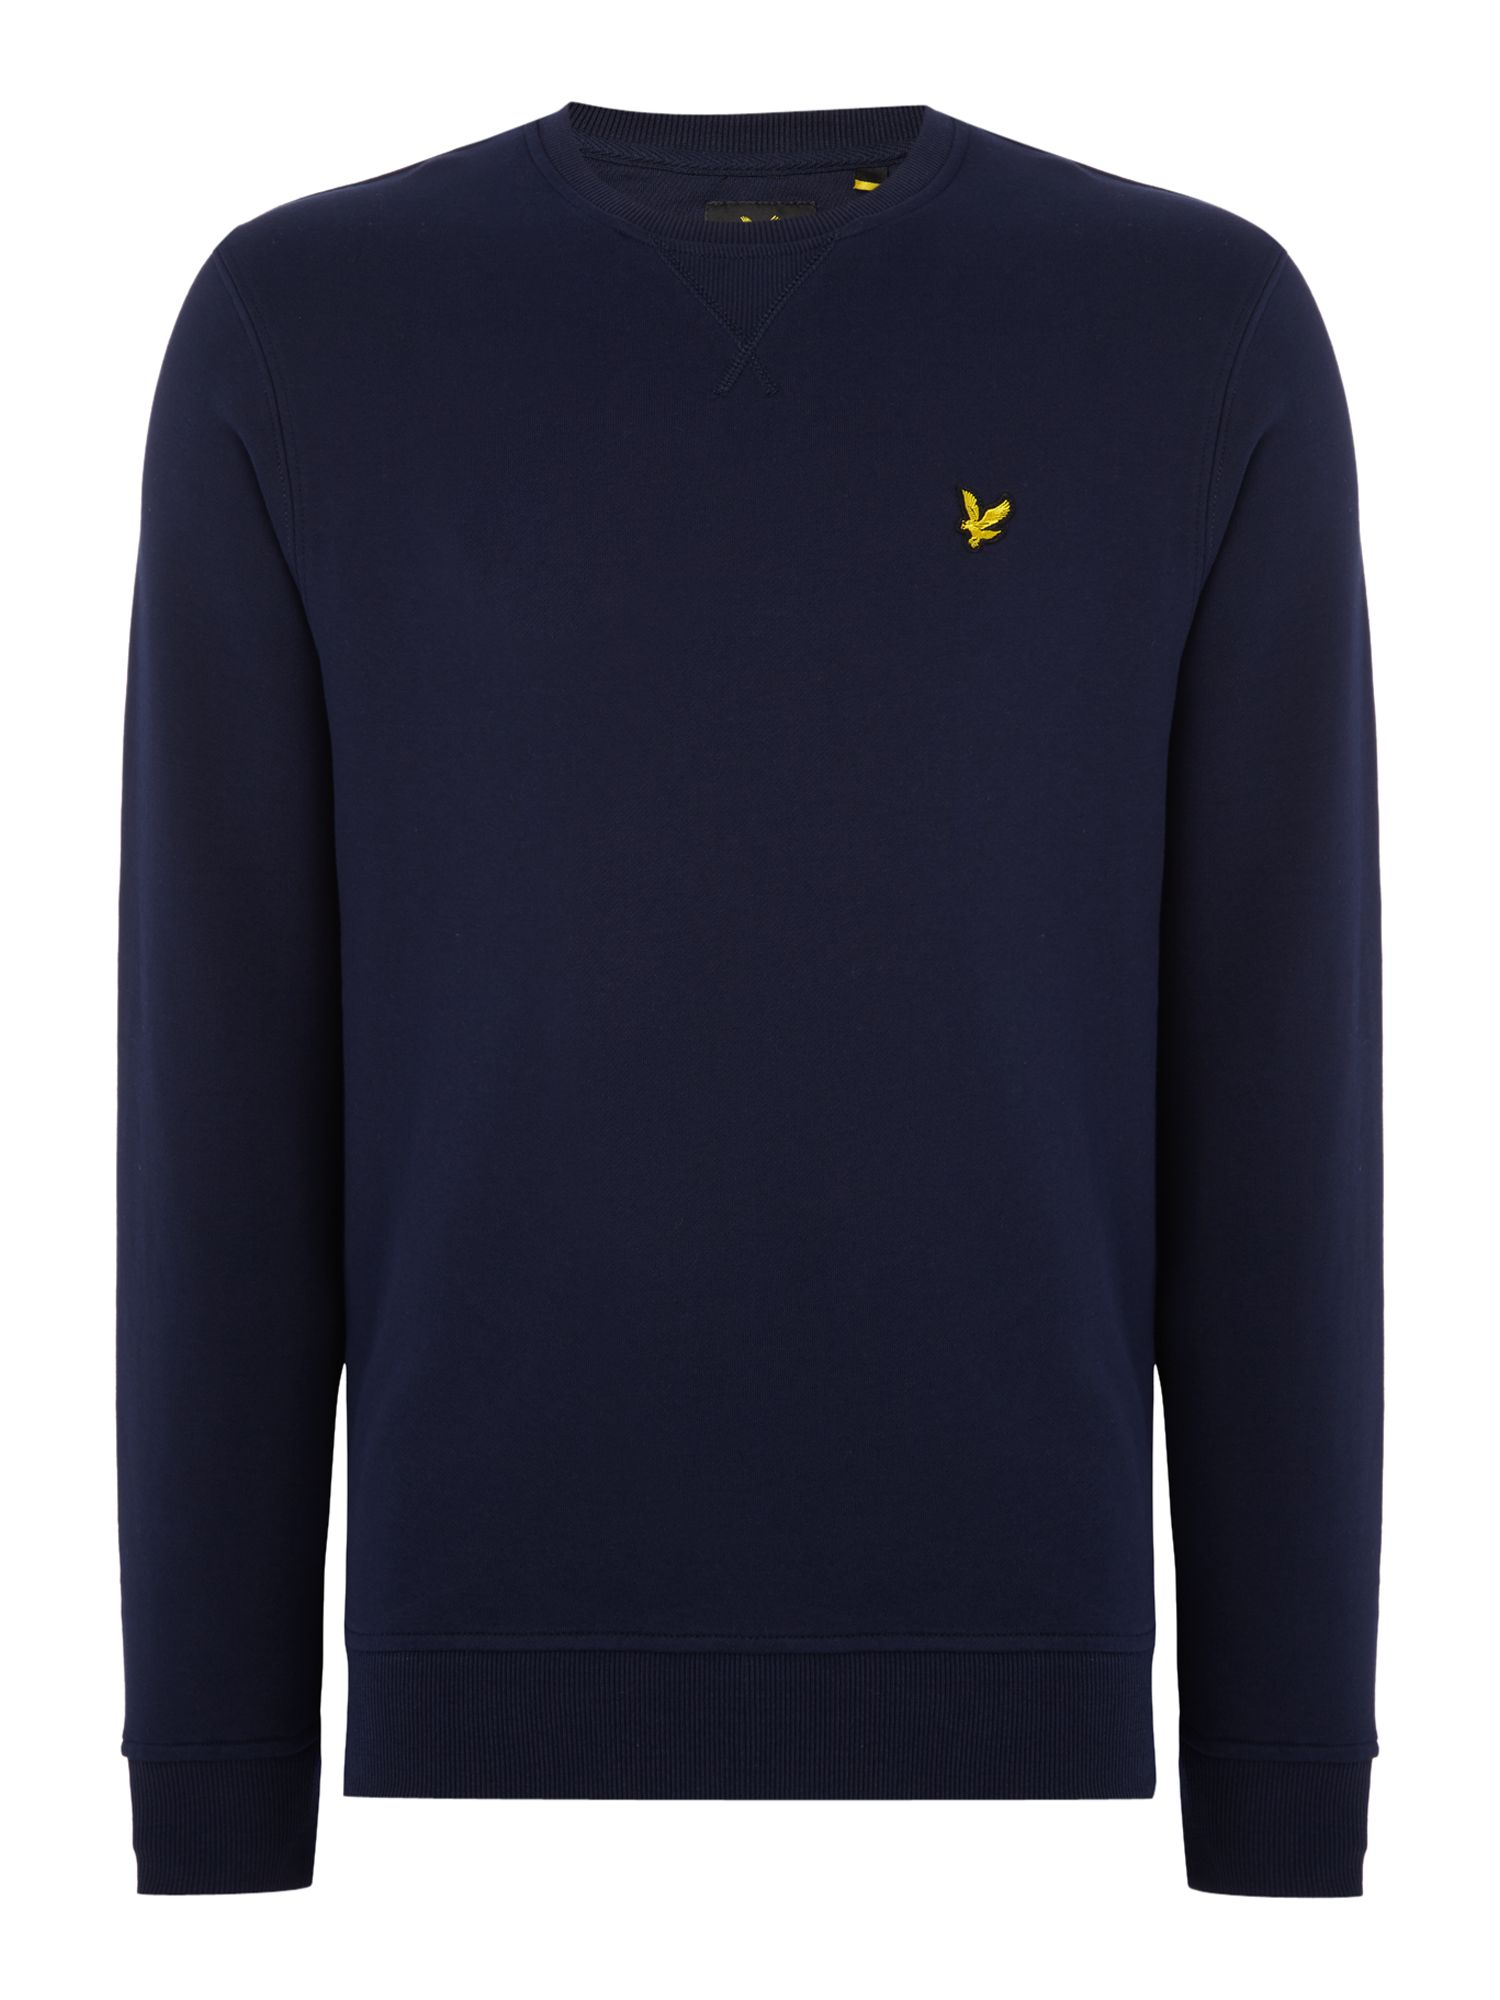 Men's Lyle and Scott Crew Neck Sweatshirt, Blue